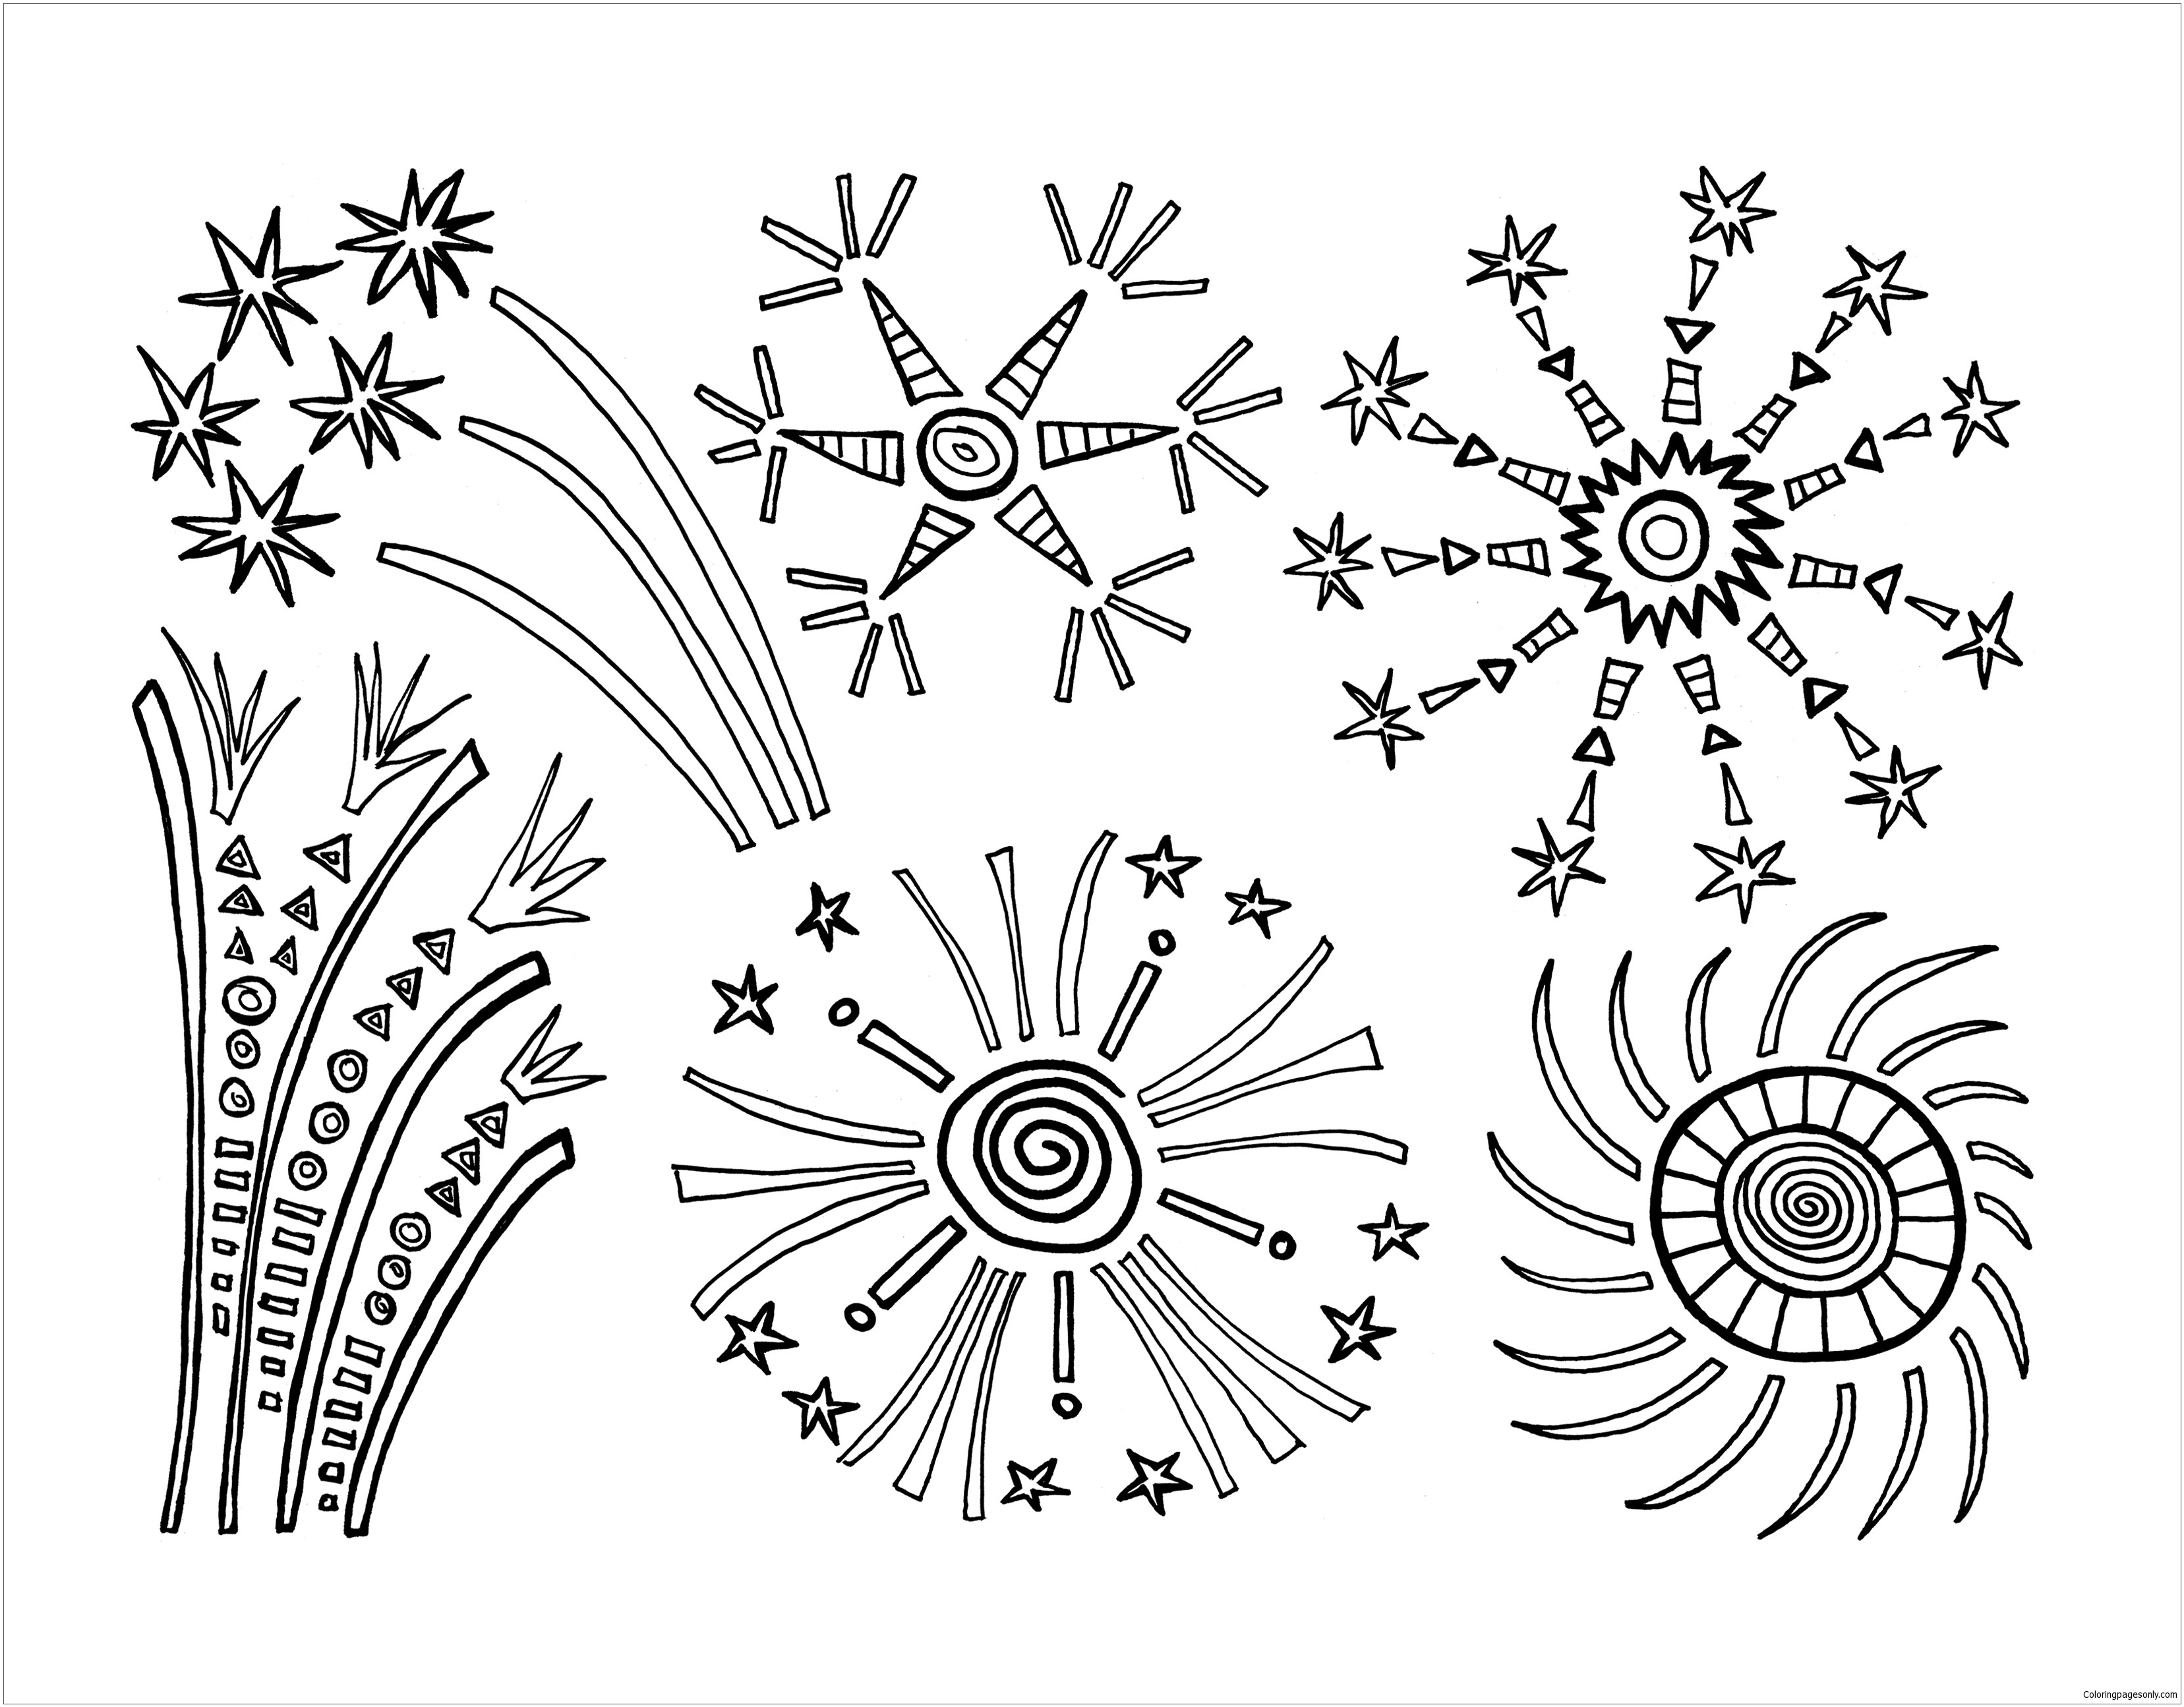 Fireworks For New Year Coloring Page Free Coloring Pages line